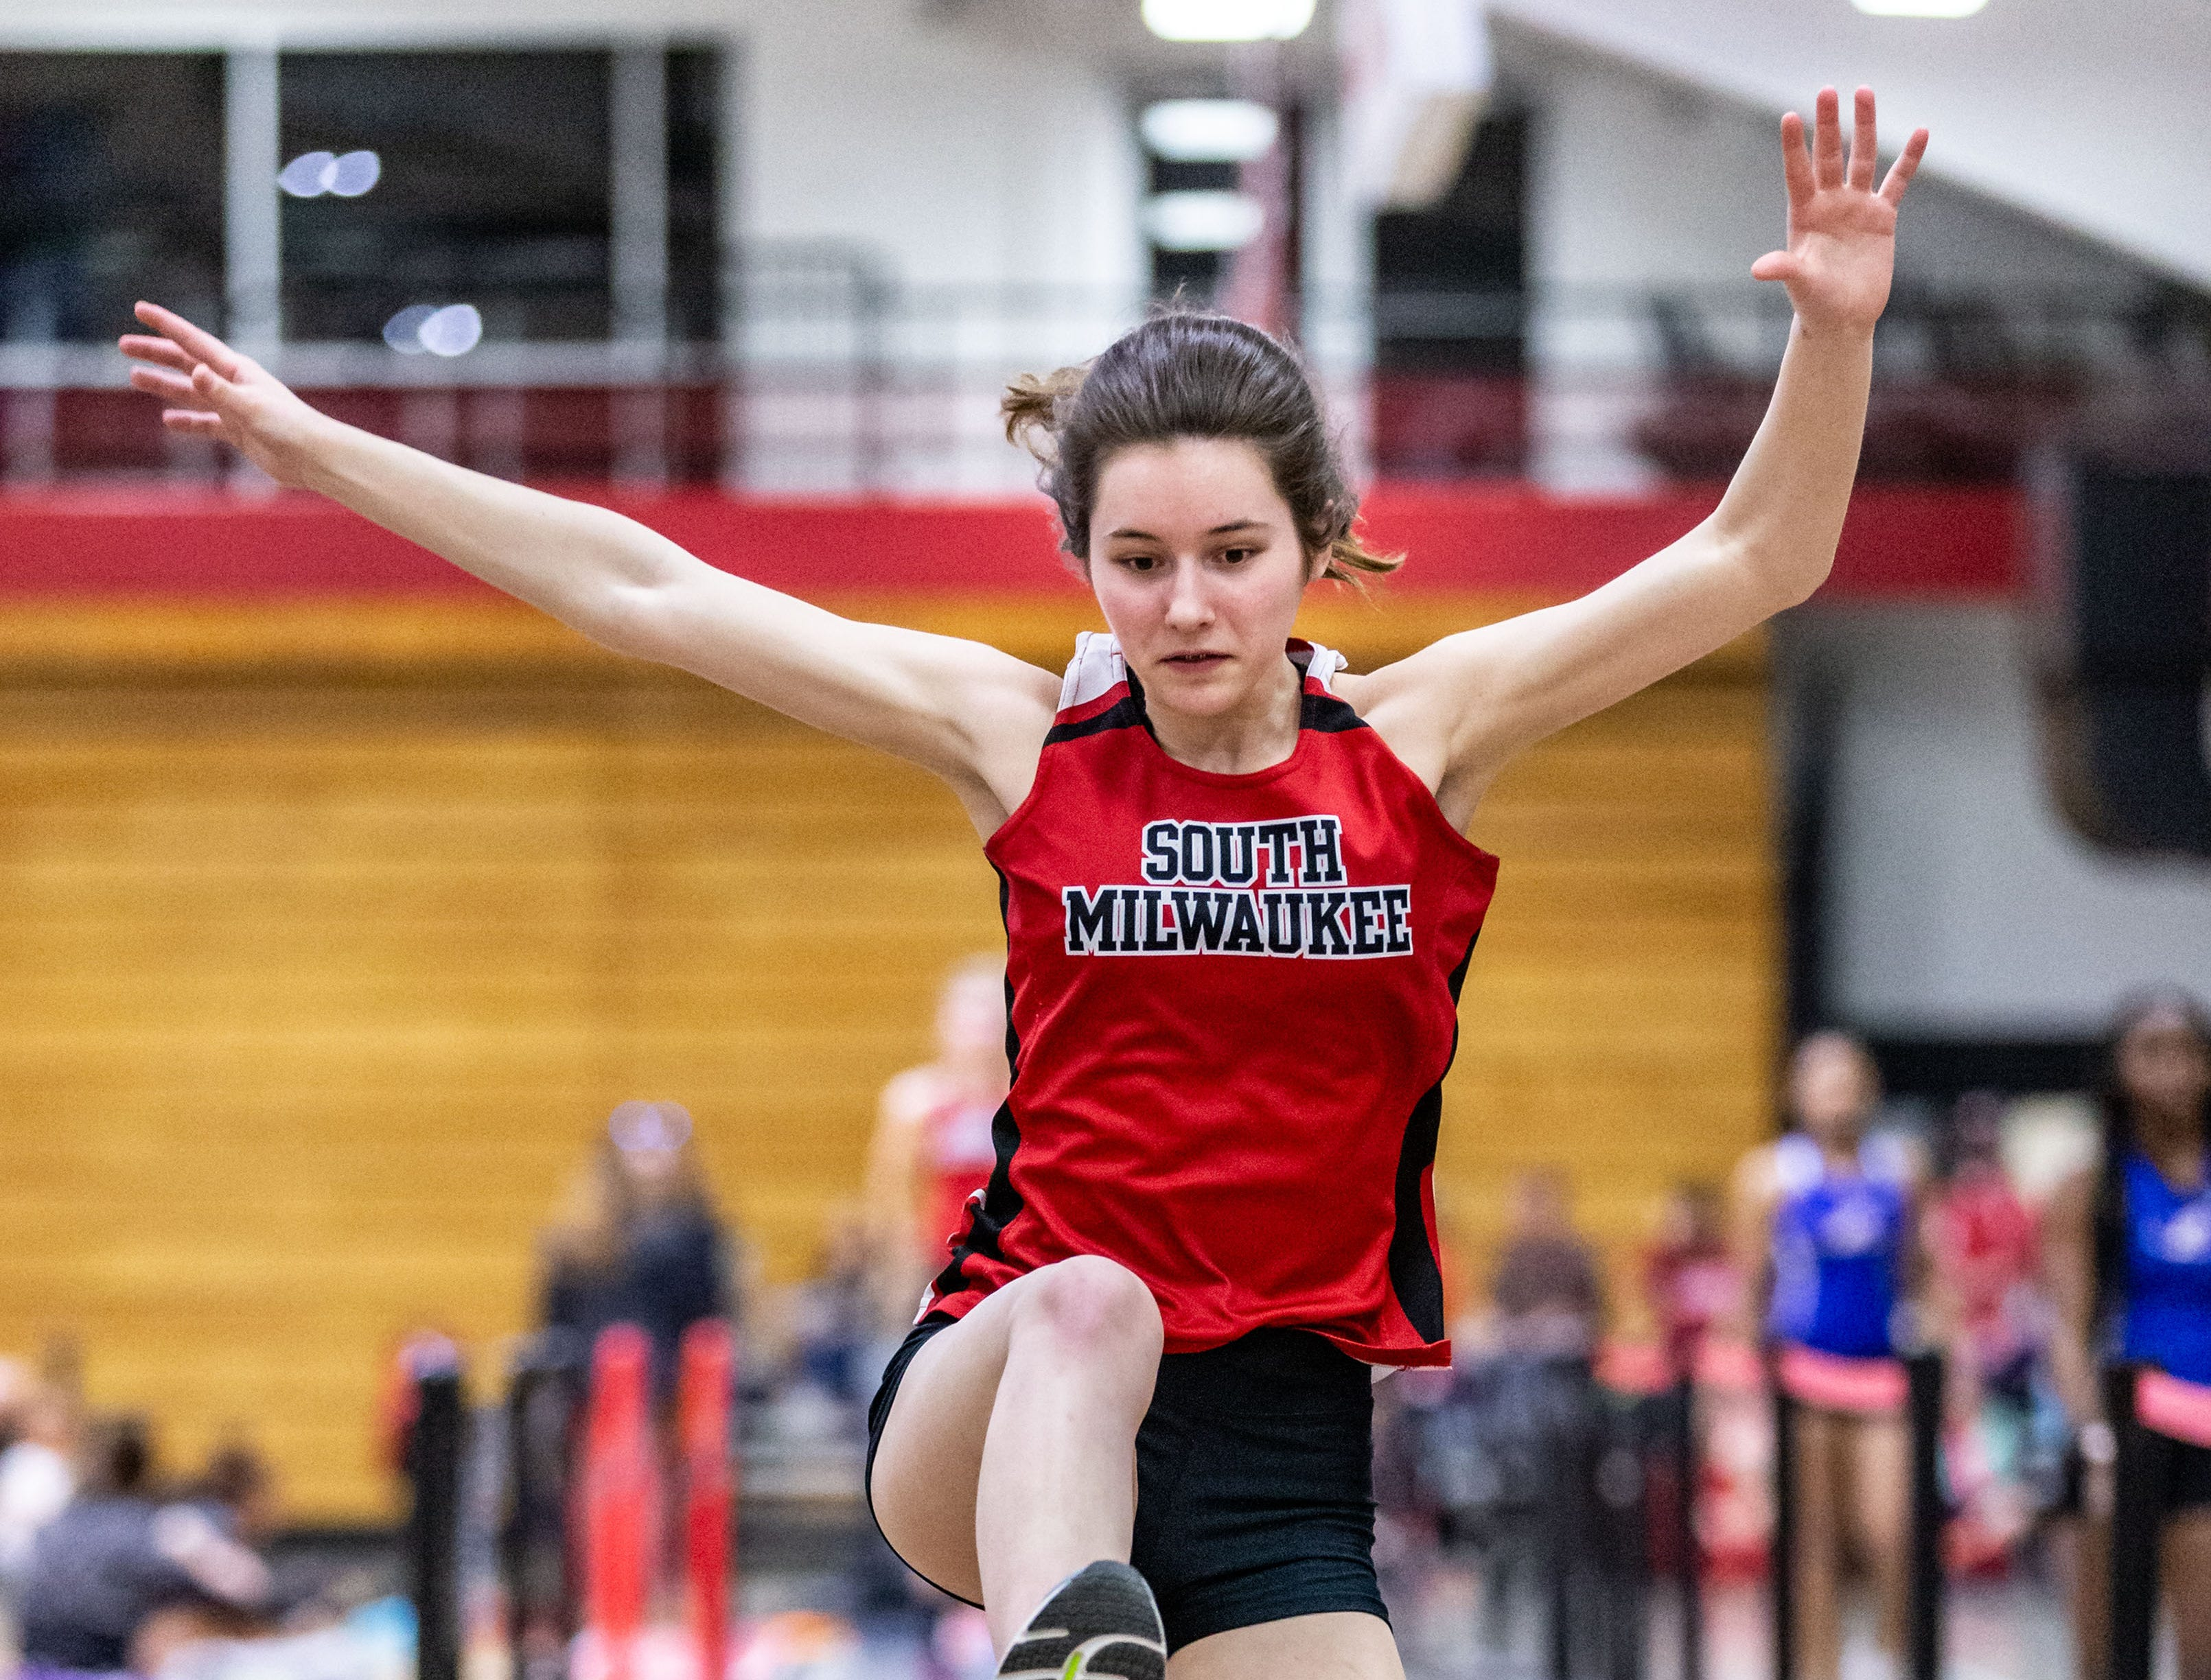 South Milwaukee's Keegan Schell competes in the long jump at the Peter Rempe Cardinal Relays hosted by Waukesha South on Thursday, March 21, 2019.